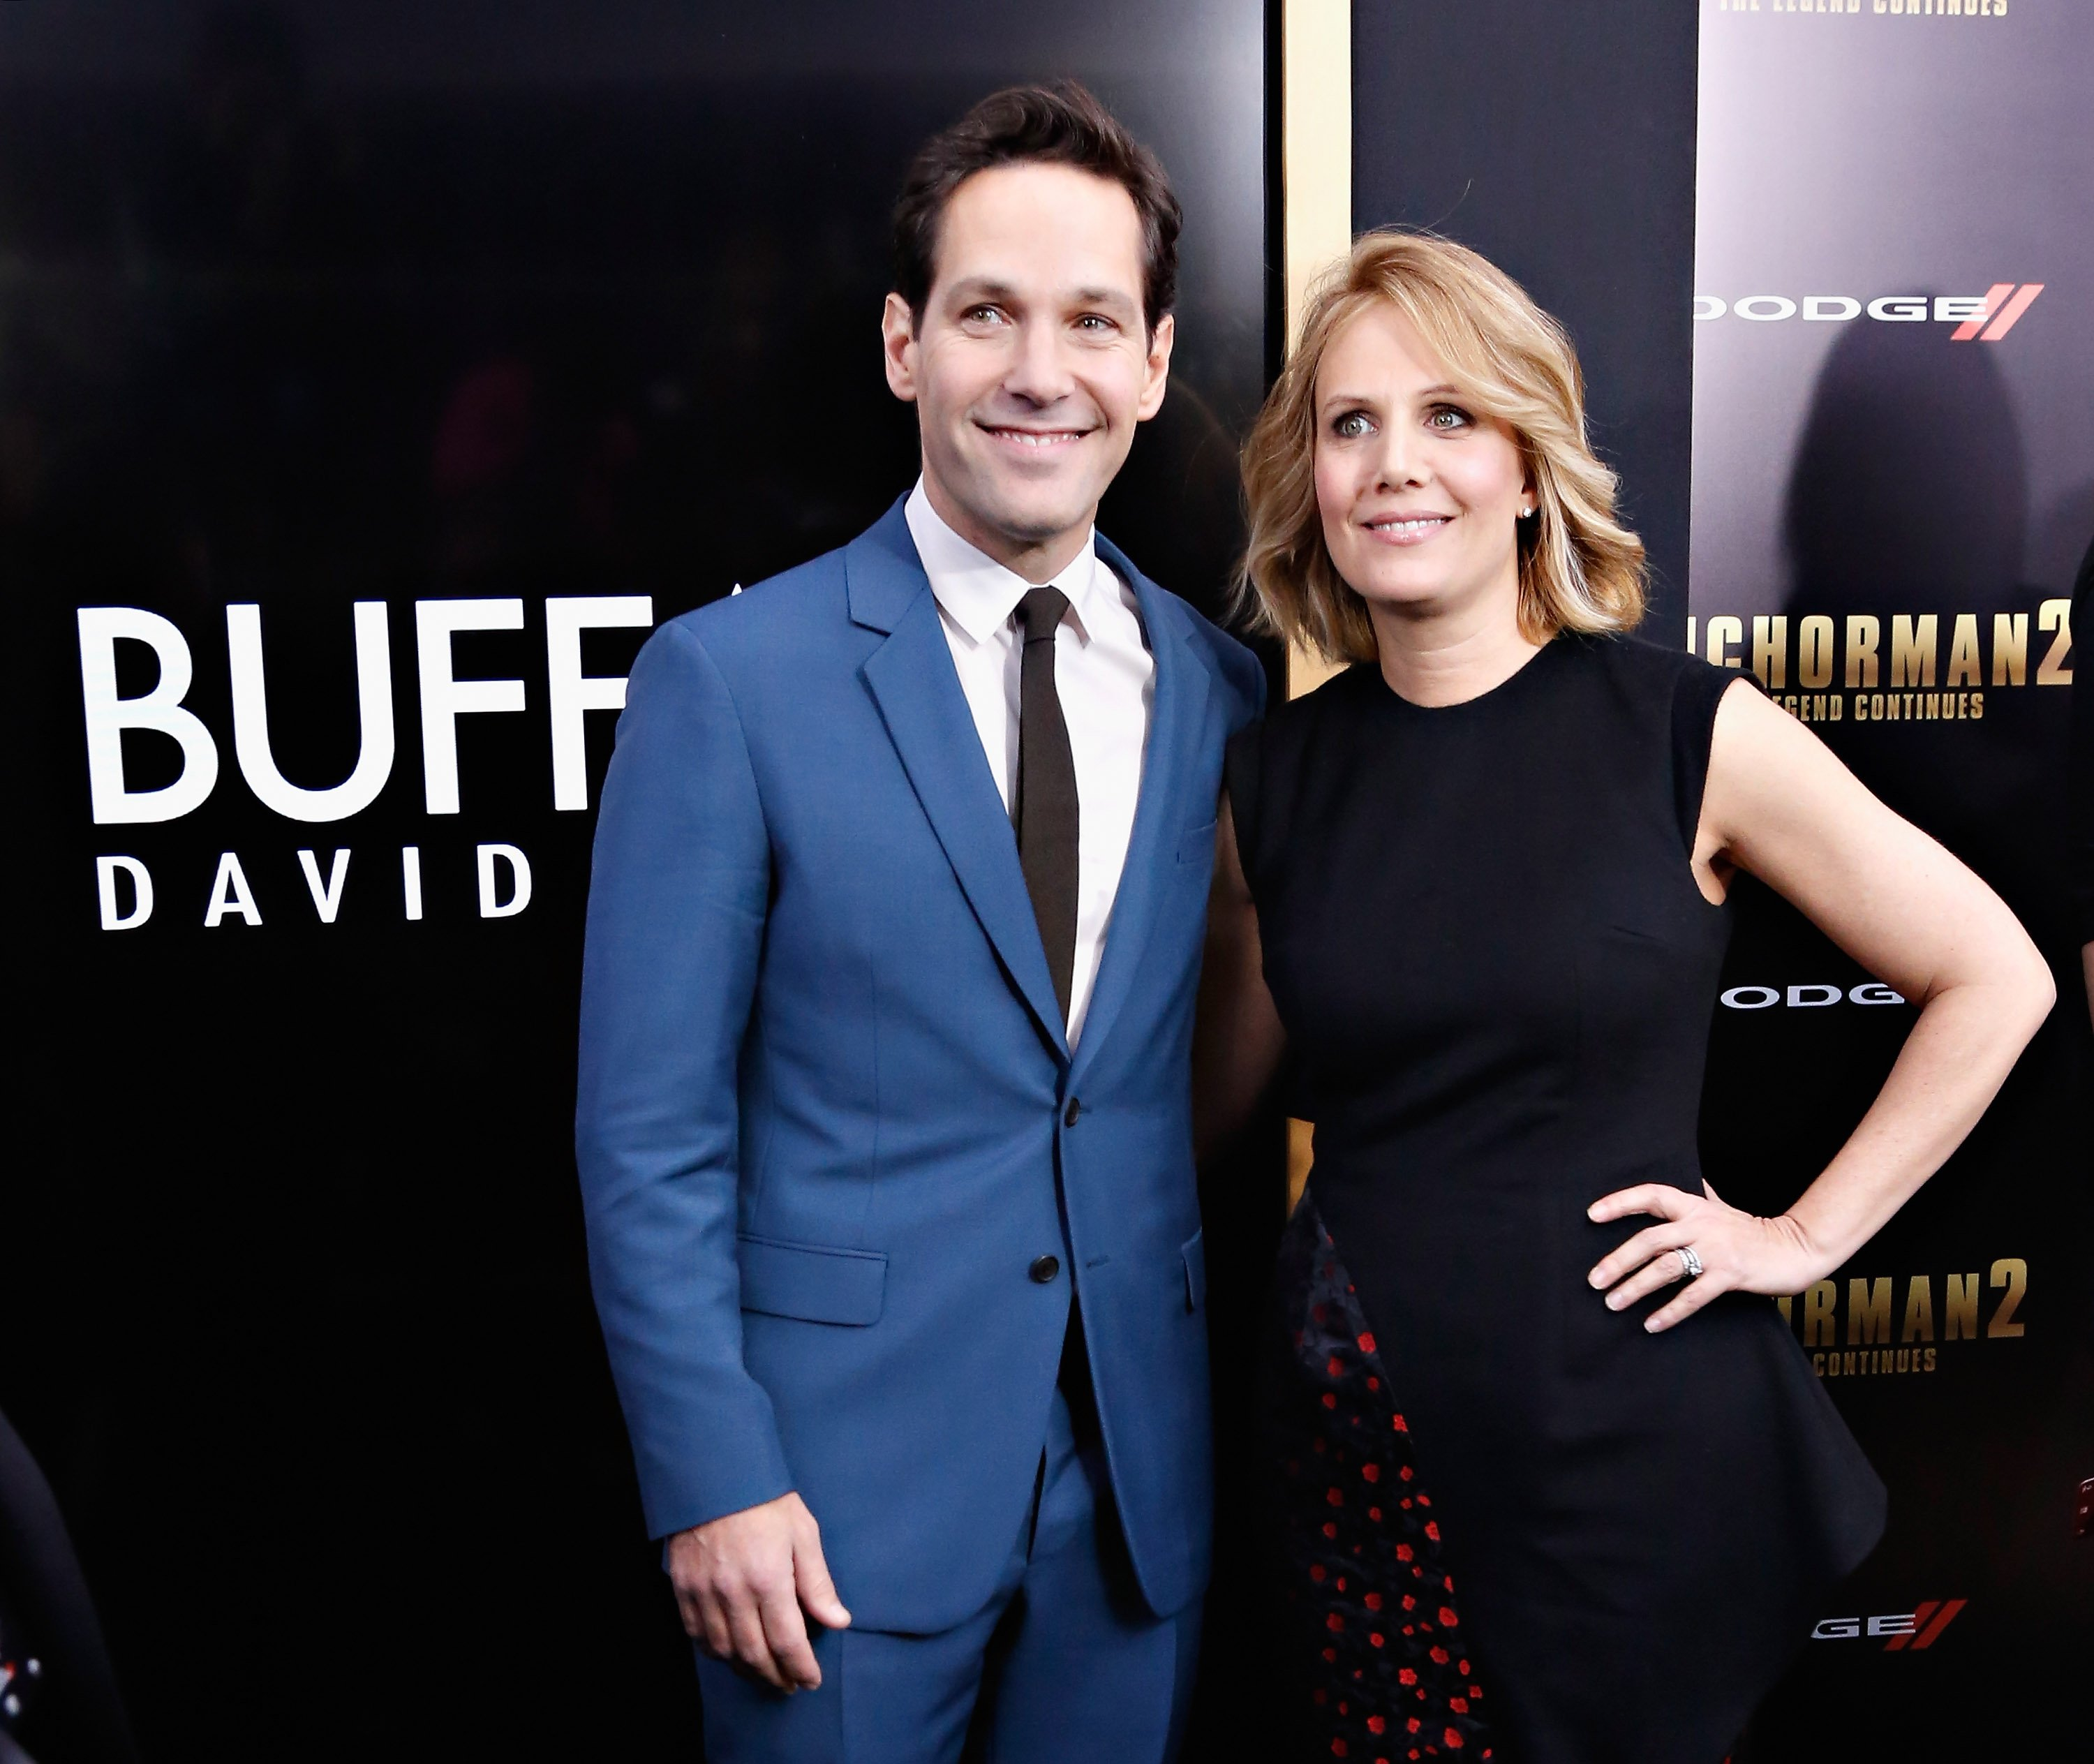 Paul Rudd and Julie Yaeger on December 15, 2013 in New York City | Source: Getty Images